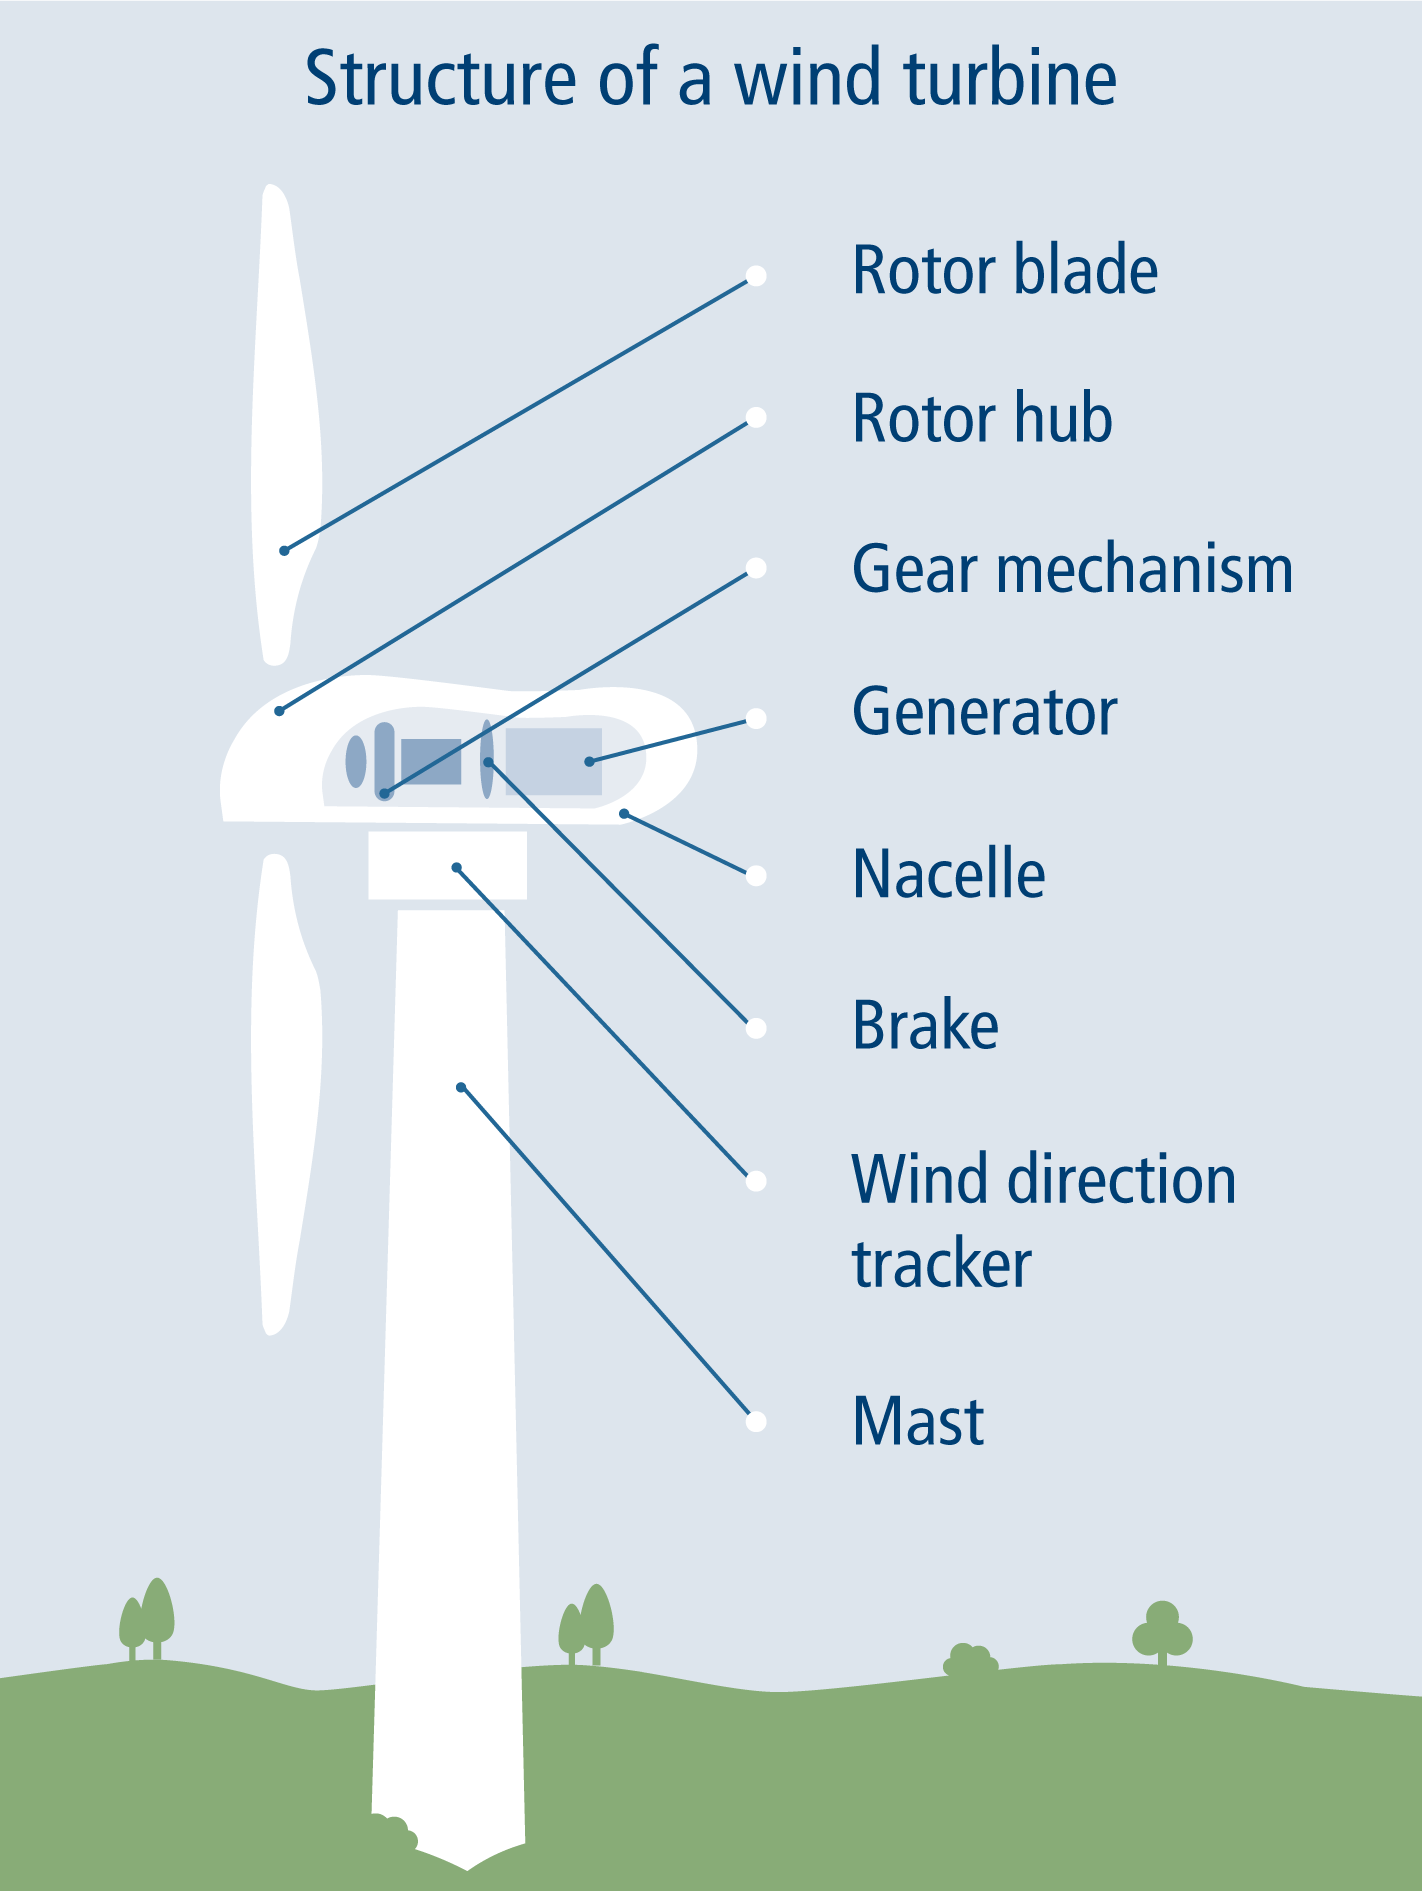 graphic wind turbine